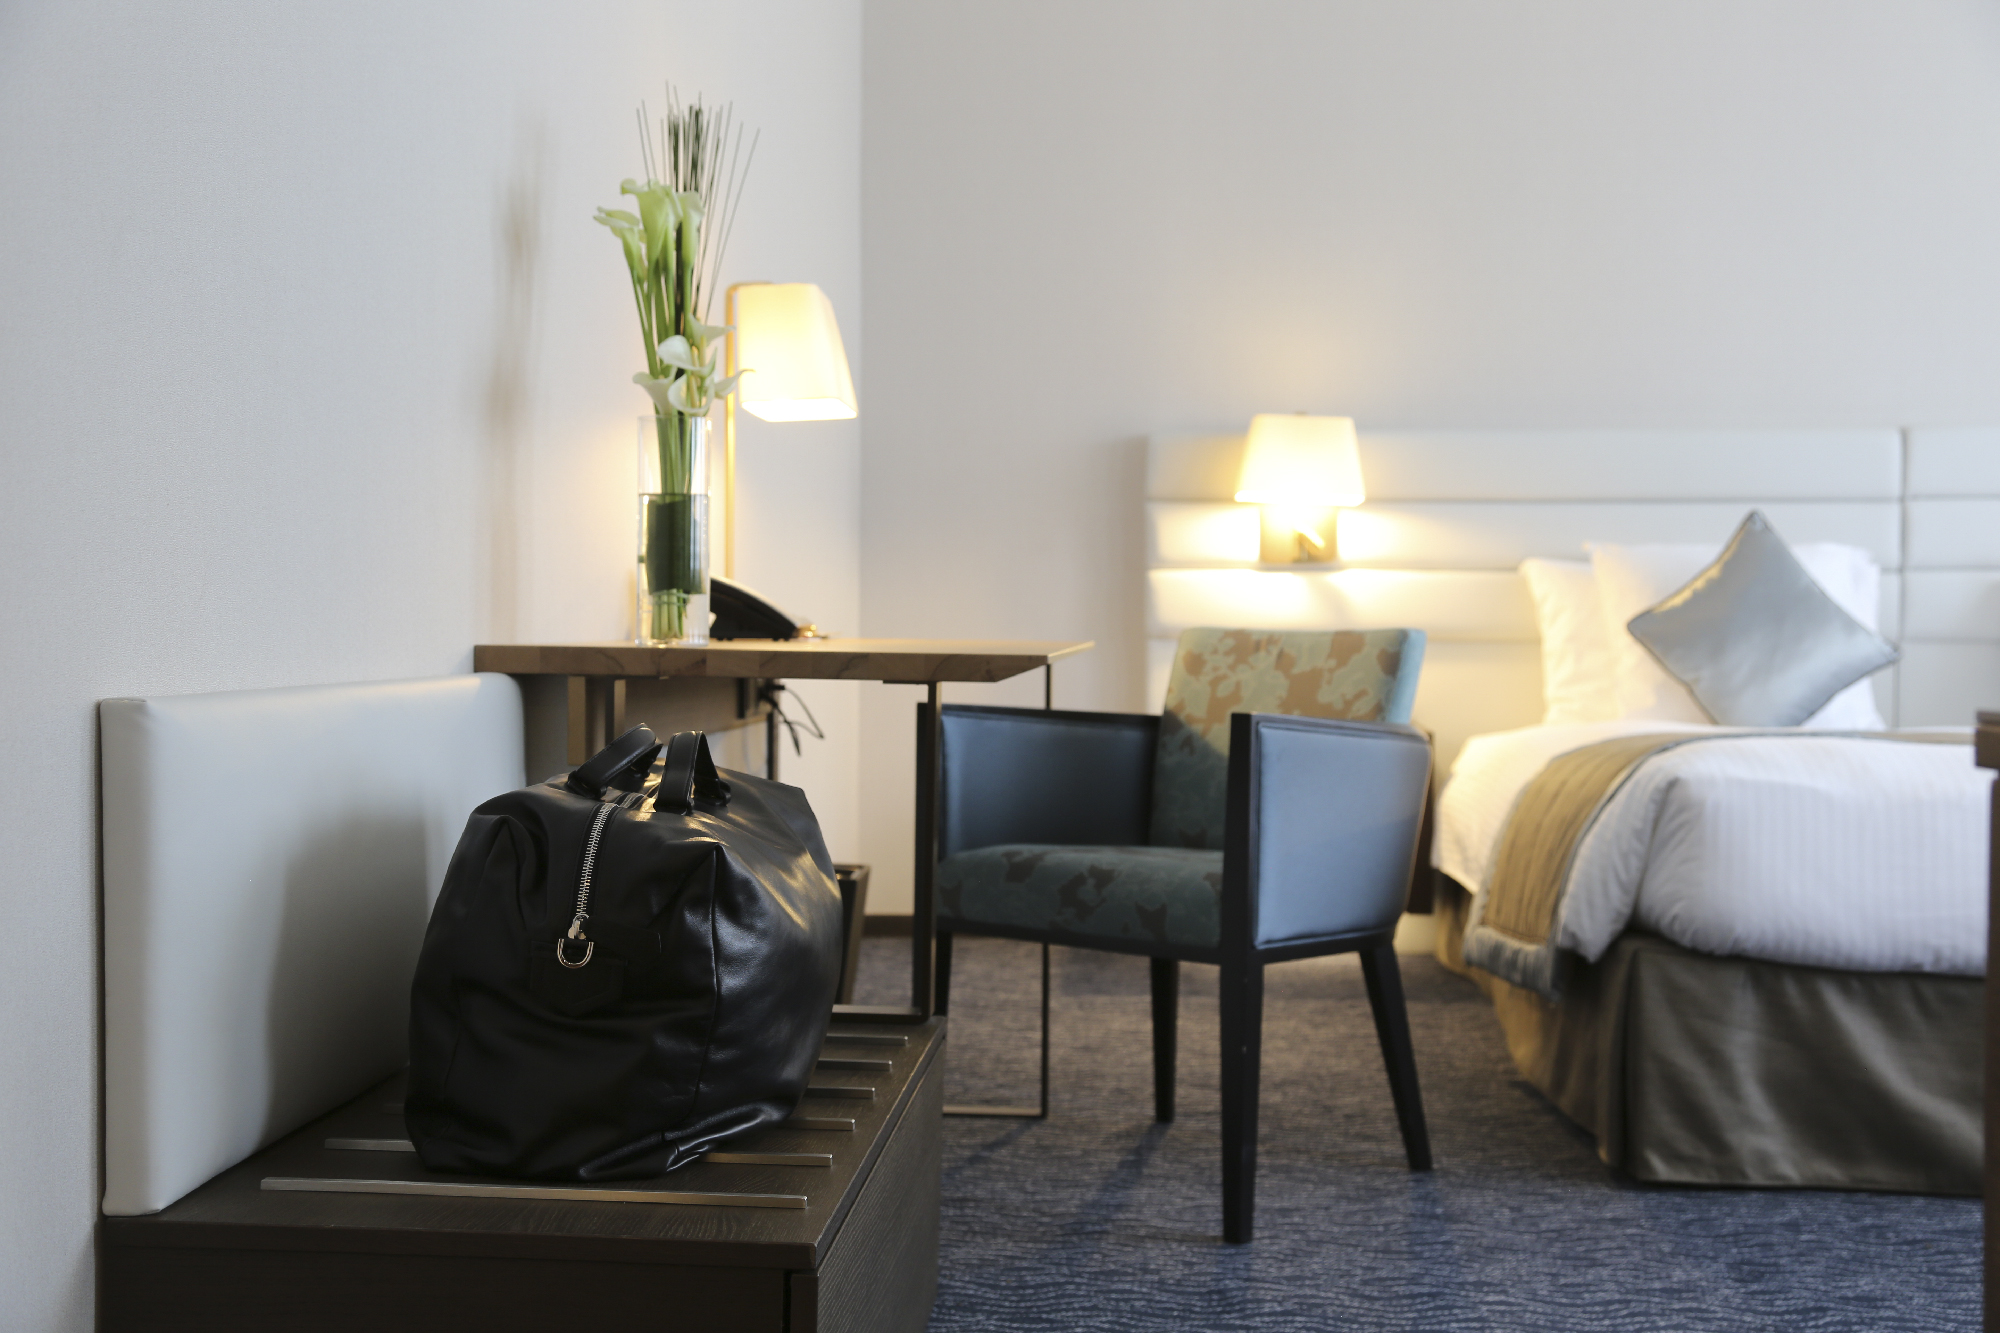 Le Royal Hotel Luxembourg - Luxembourg Hotels